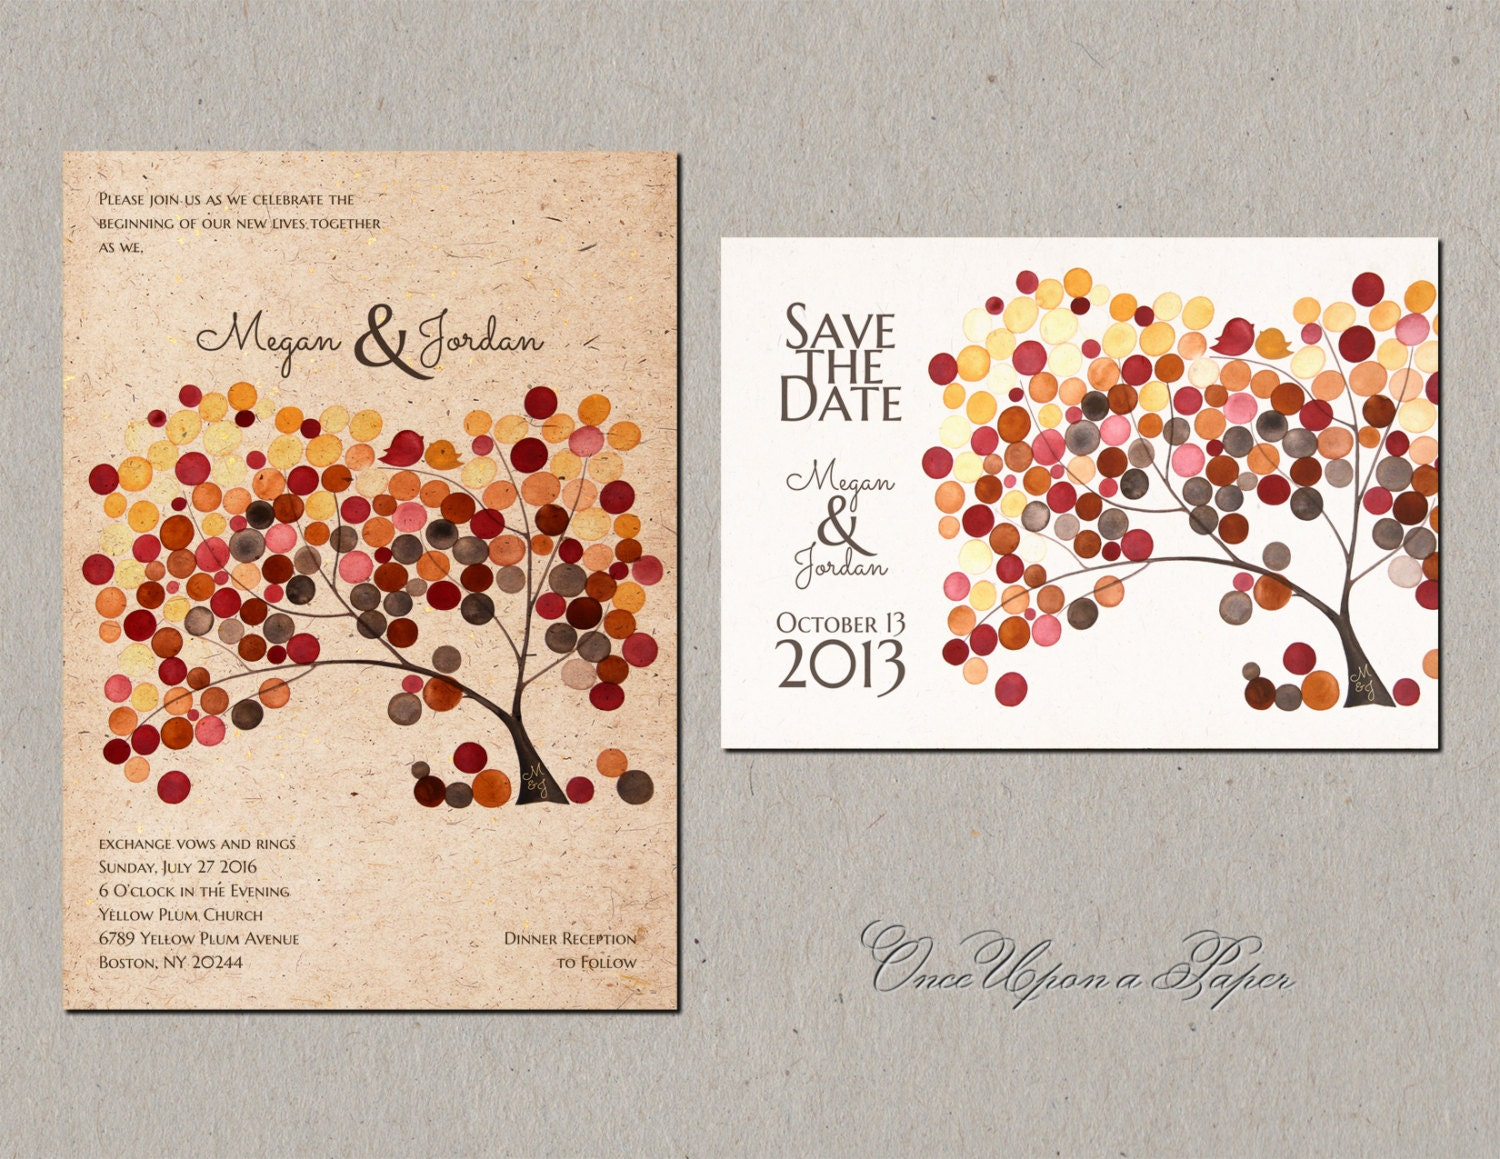 Wedding Invitations And Save The Dates Packages 015 - Wedding Invitations And Save The Dates Packages